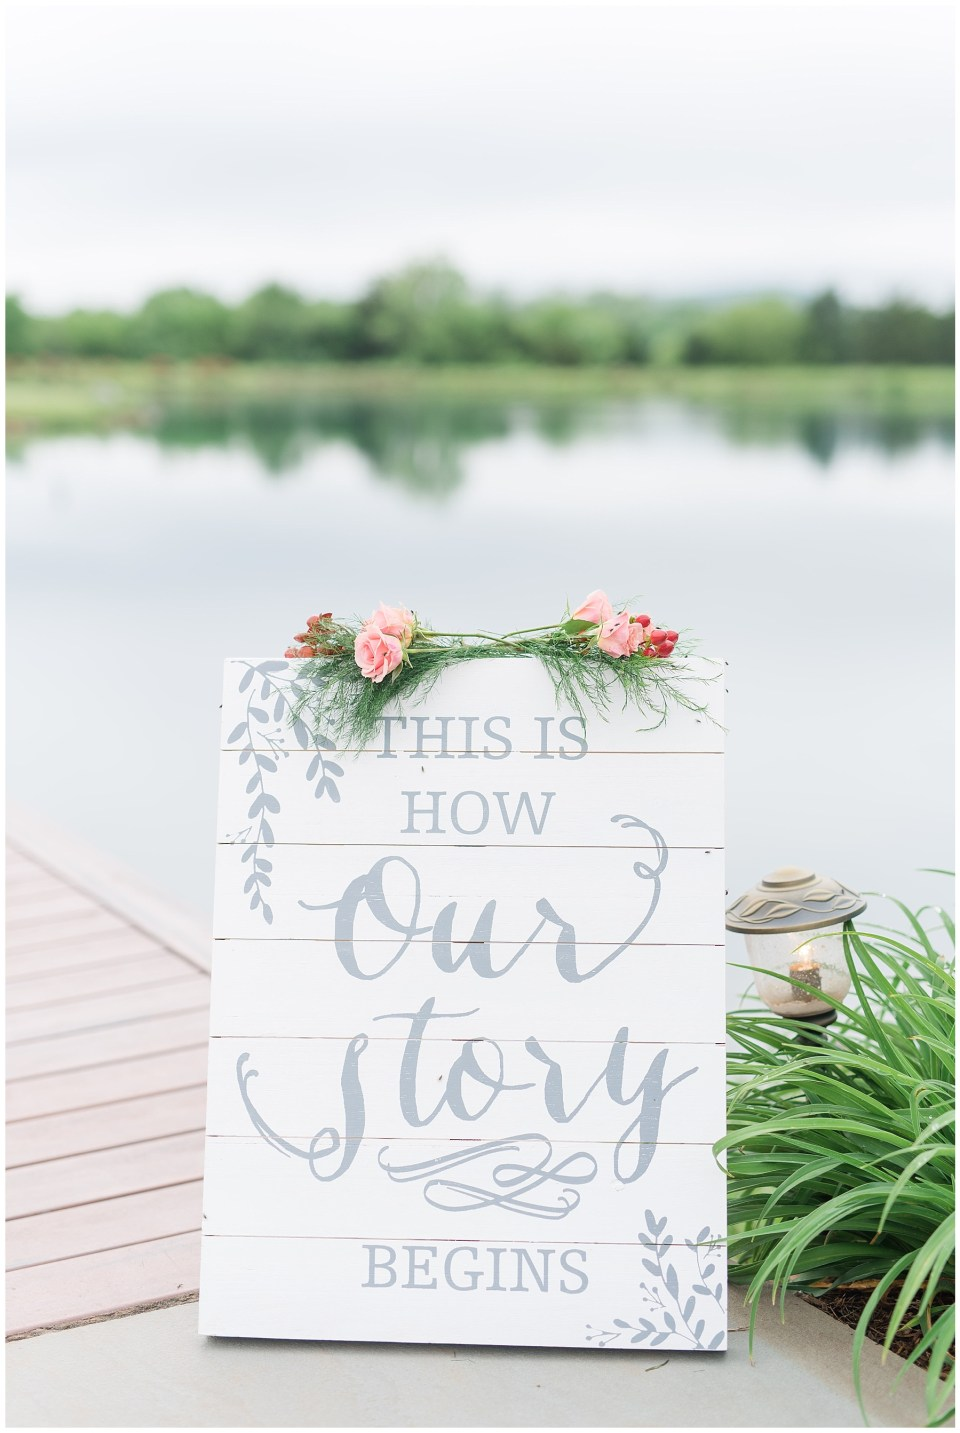 our-story-begins-white-gray-wedding-sign-old-house-vineyards-wedding-photo